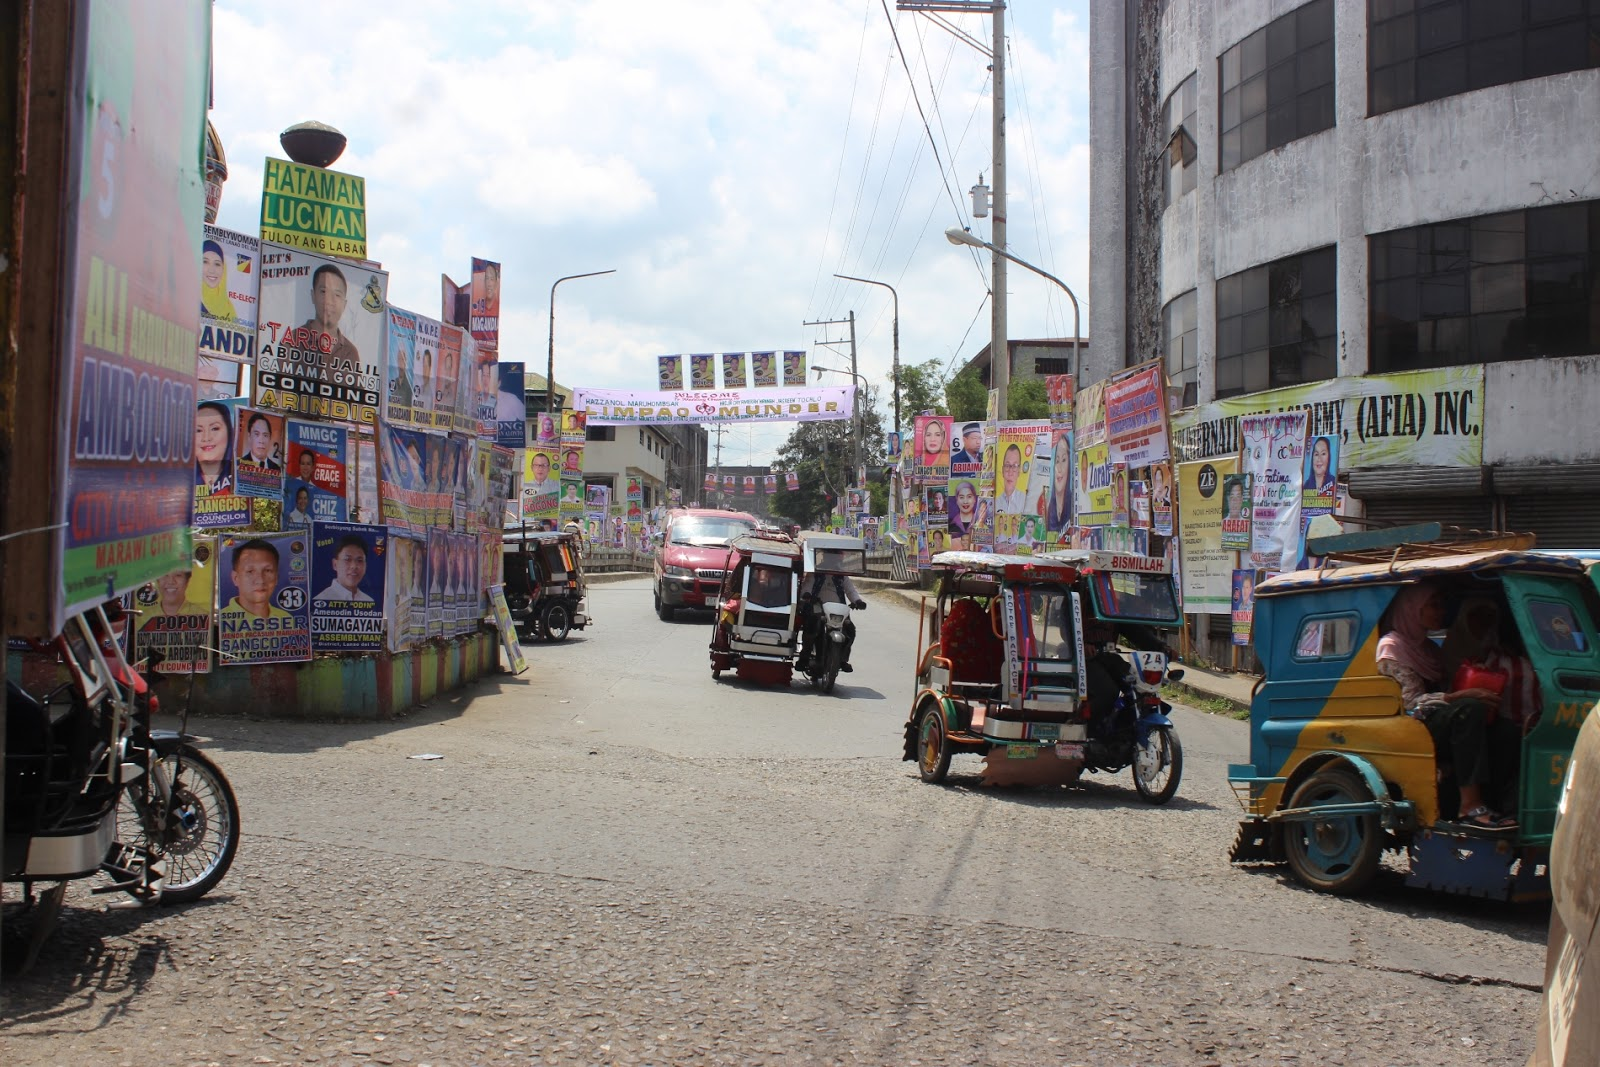 Campaign Posters in Marawi